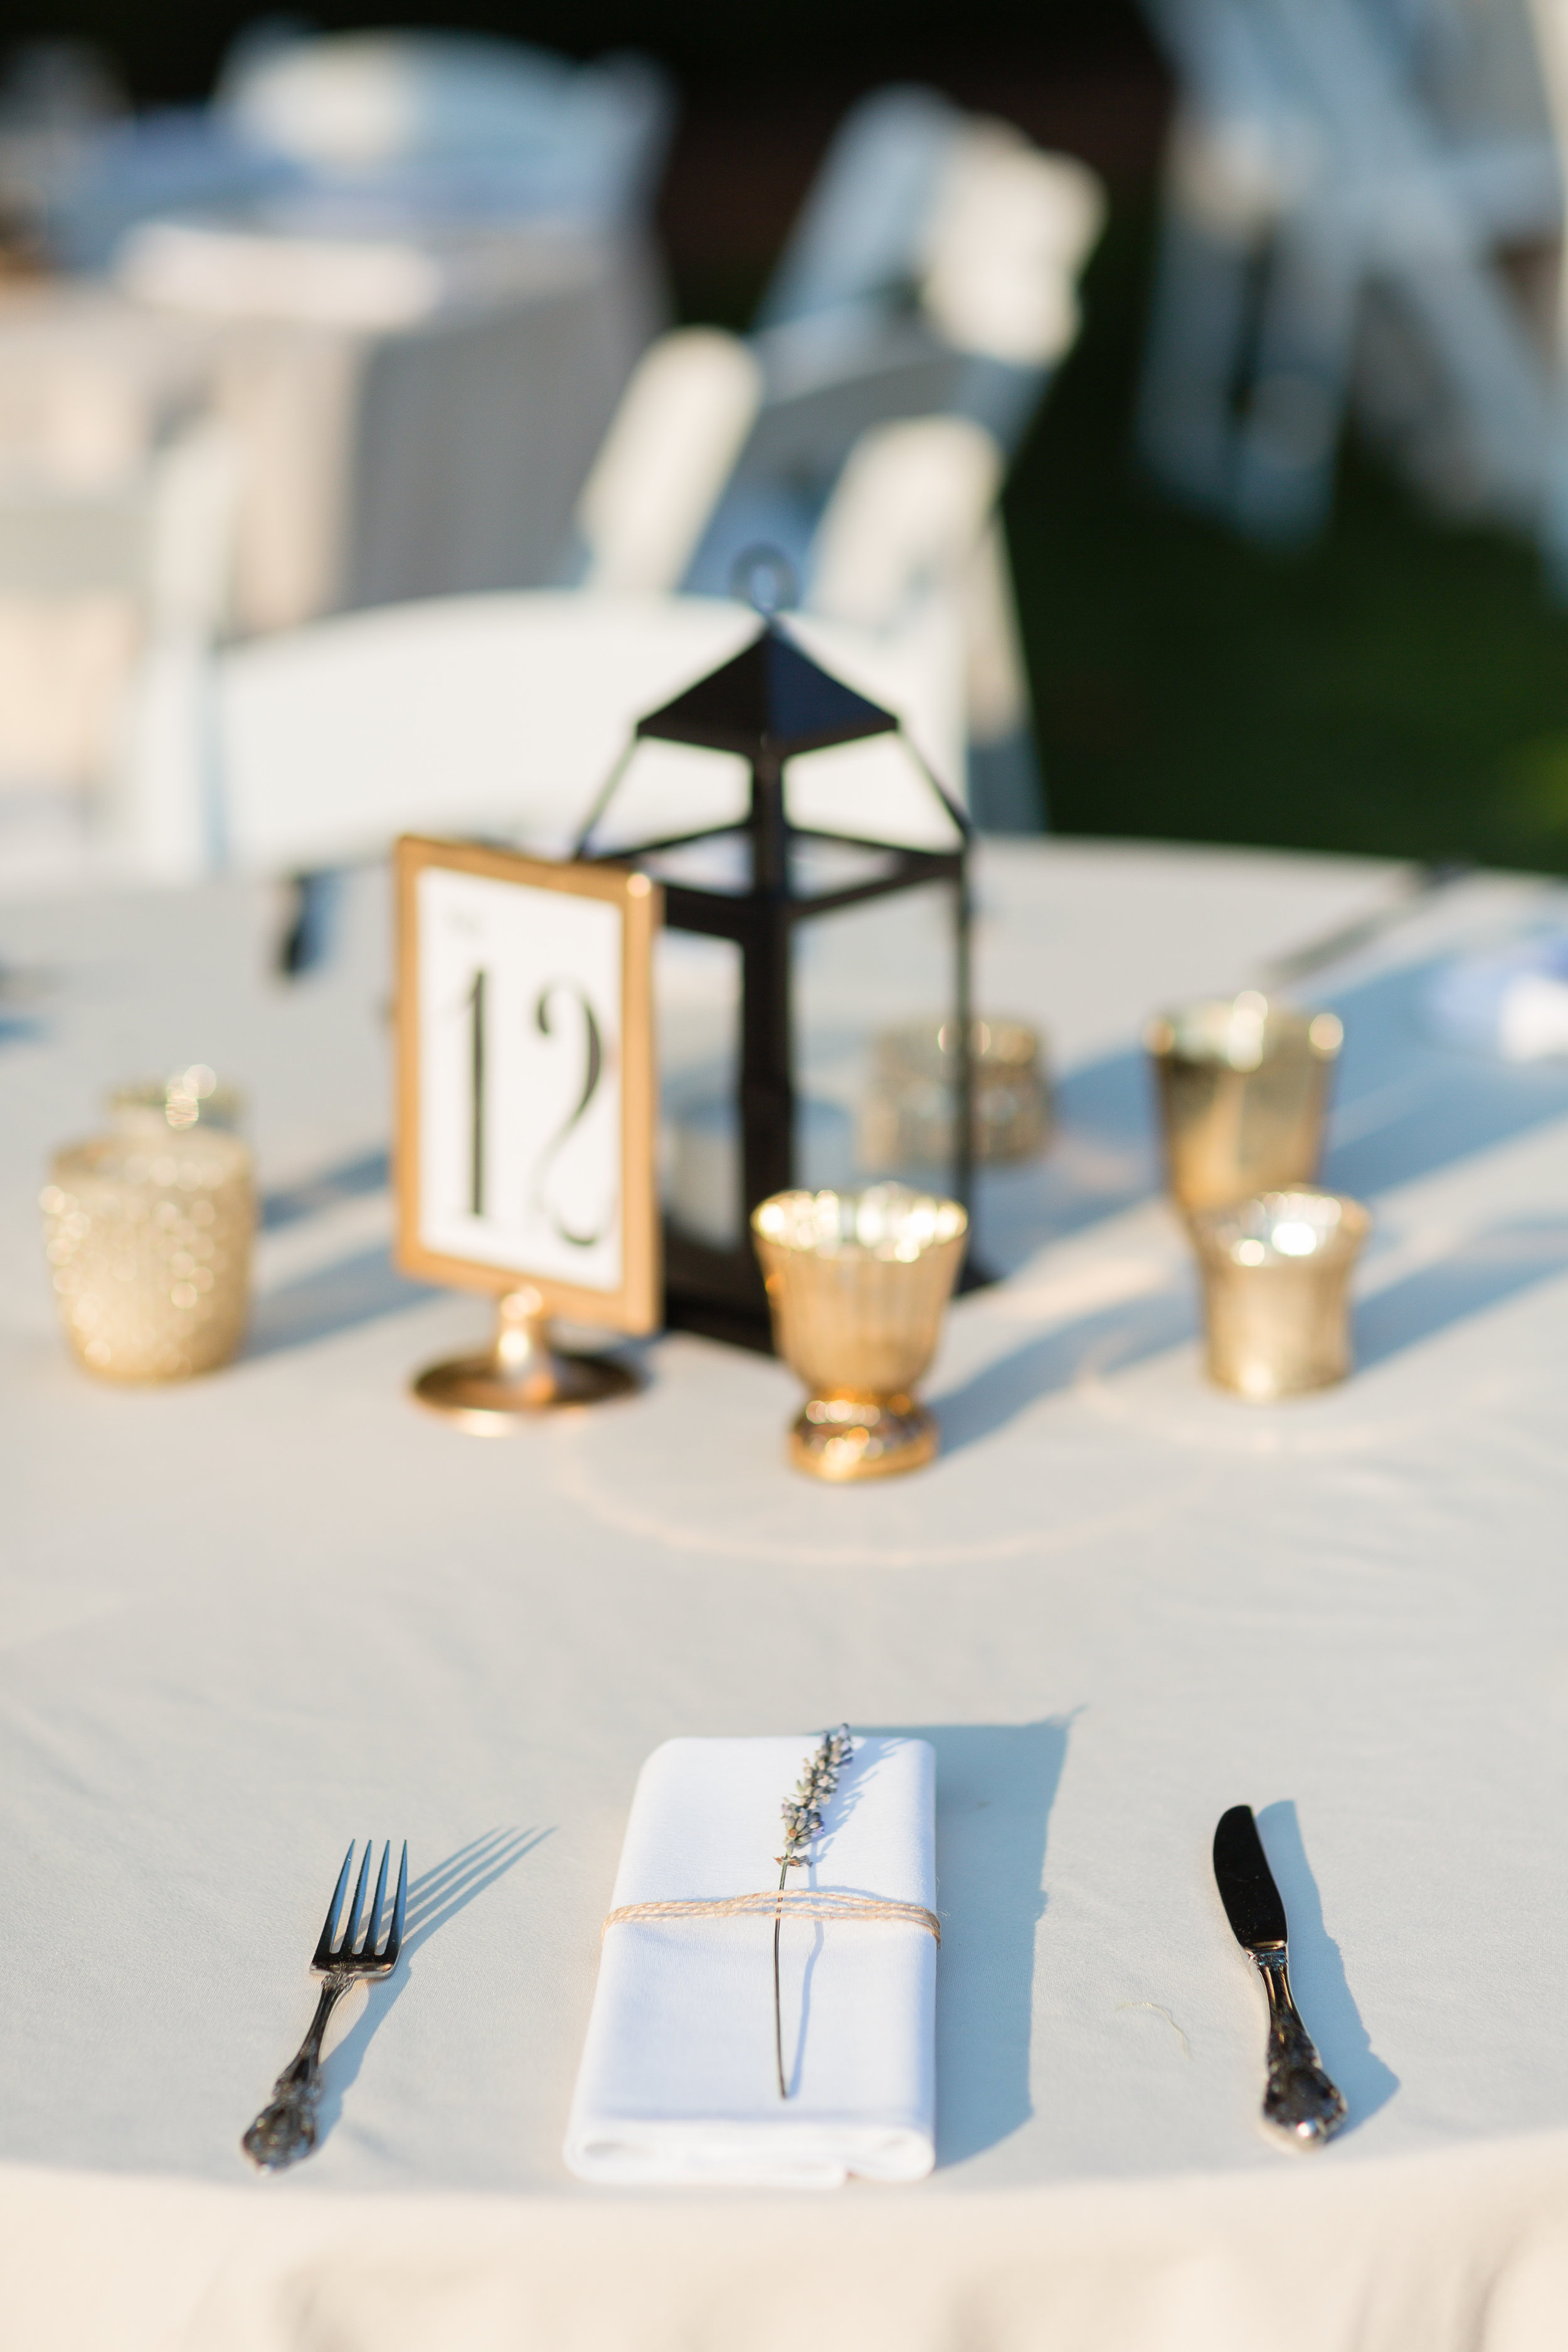 Annalise-Nick-Maple-Lawn-Wedding-449.jpg